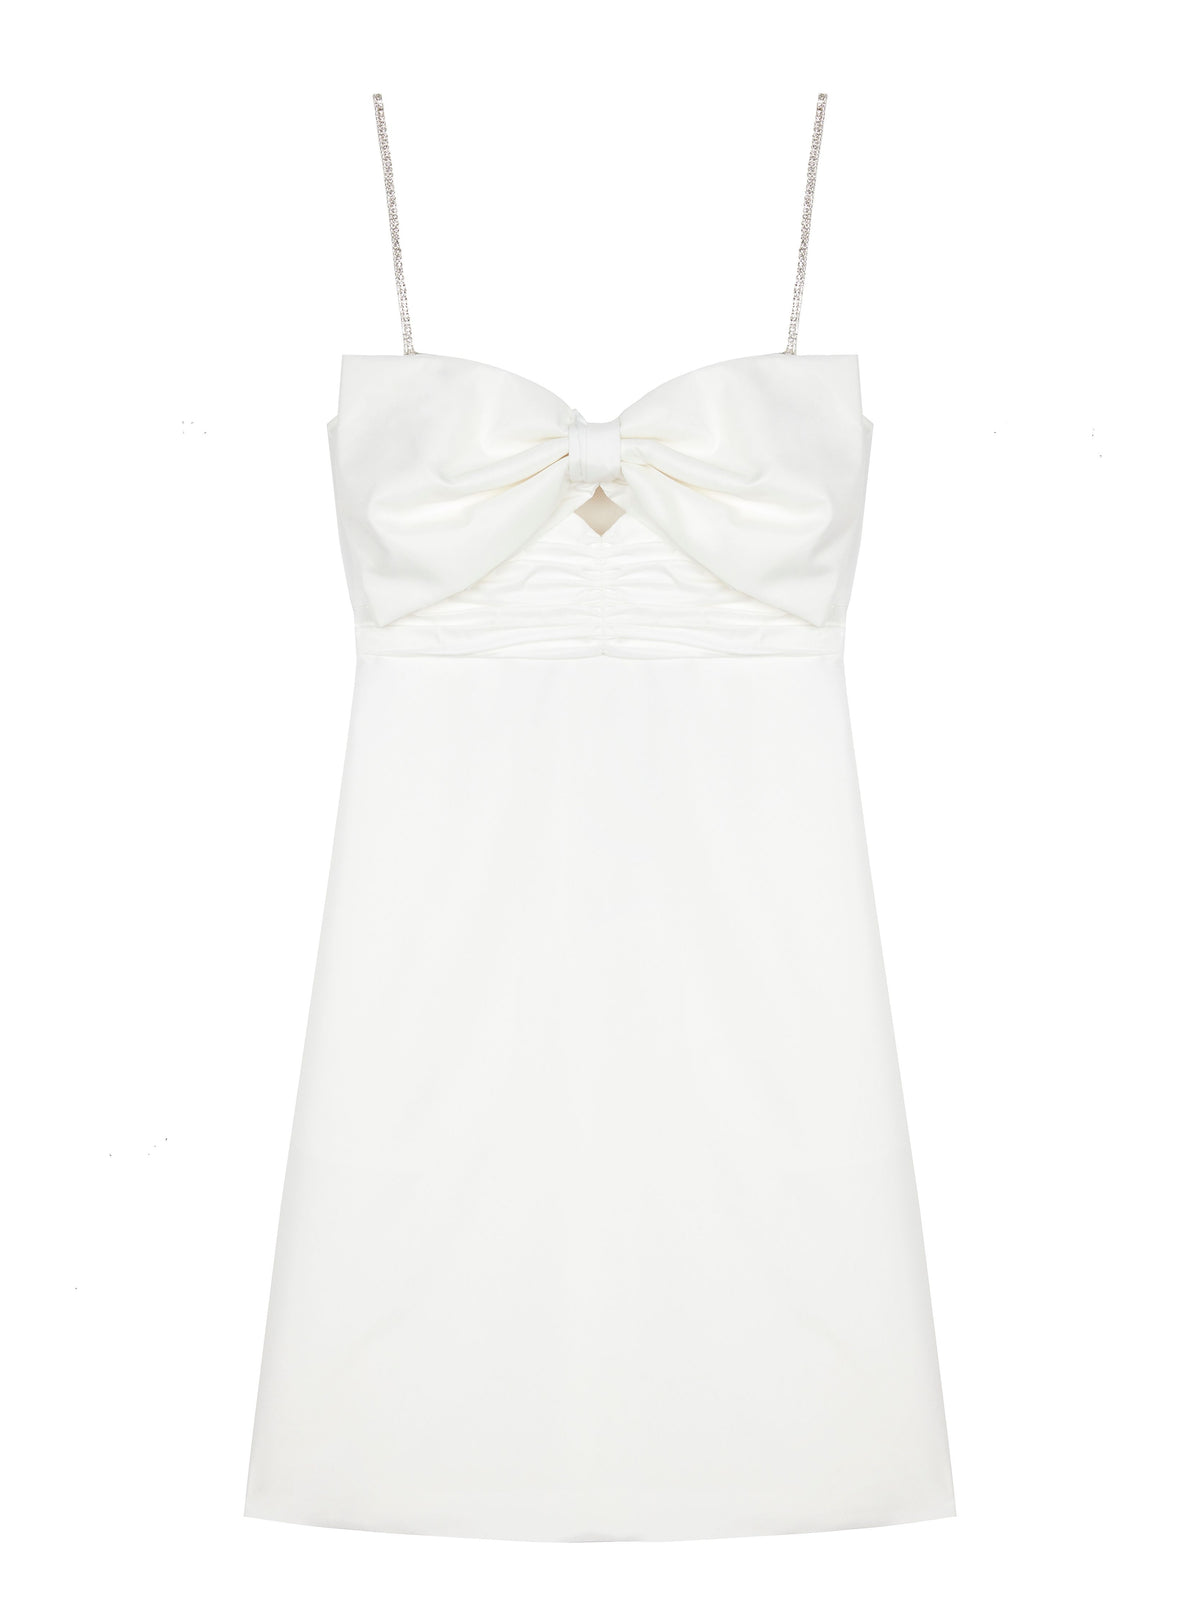 Self-Portrait - Taffeta Bow Mini Dress | White